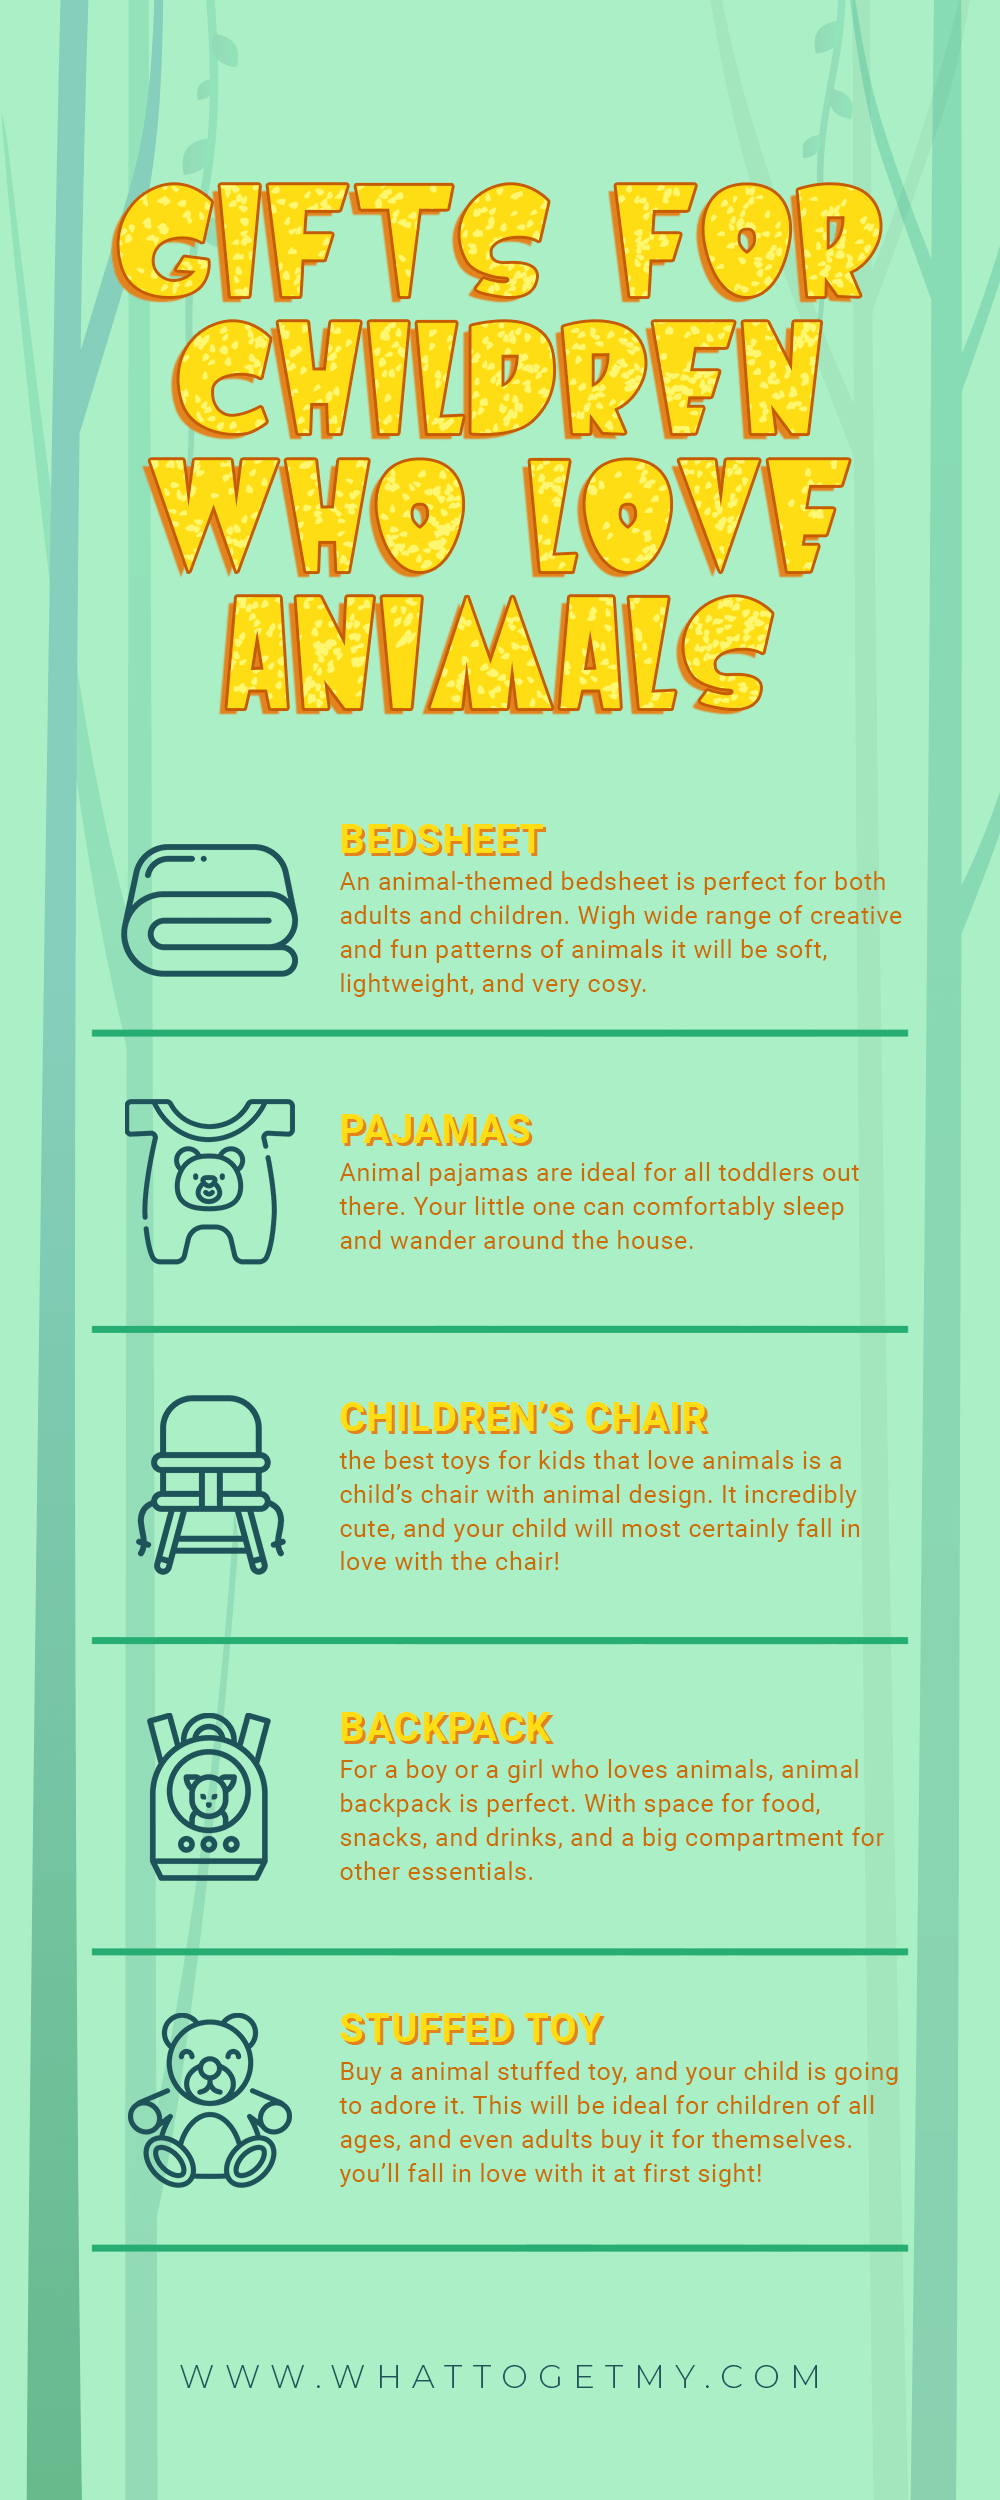 Infographic Gifts for Children Who Love Animals